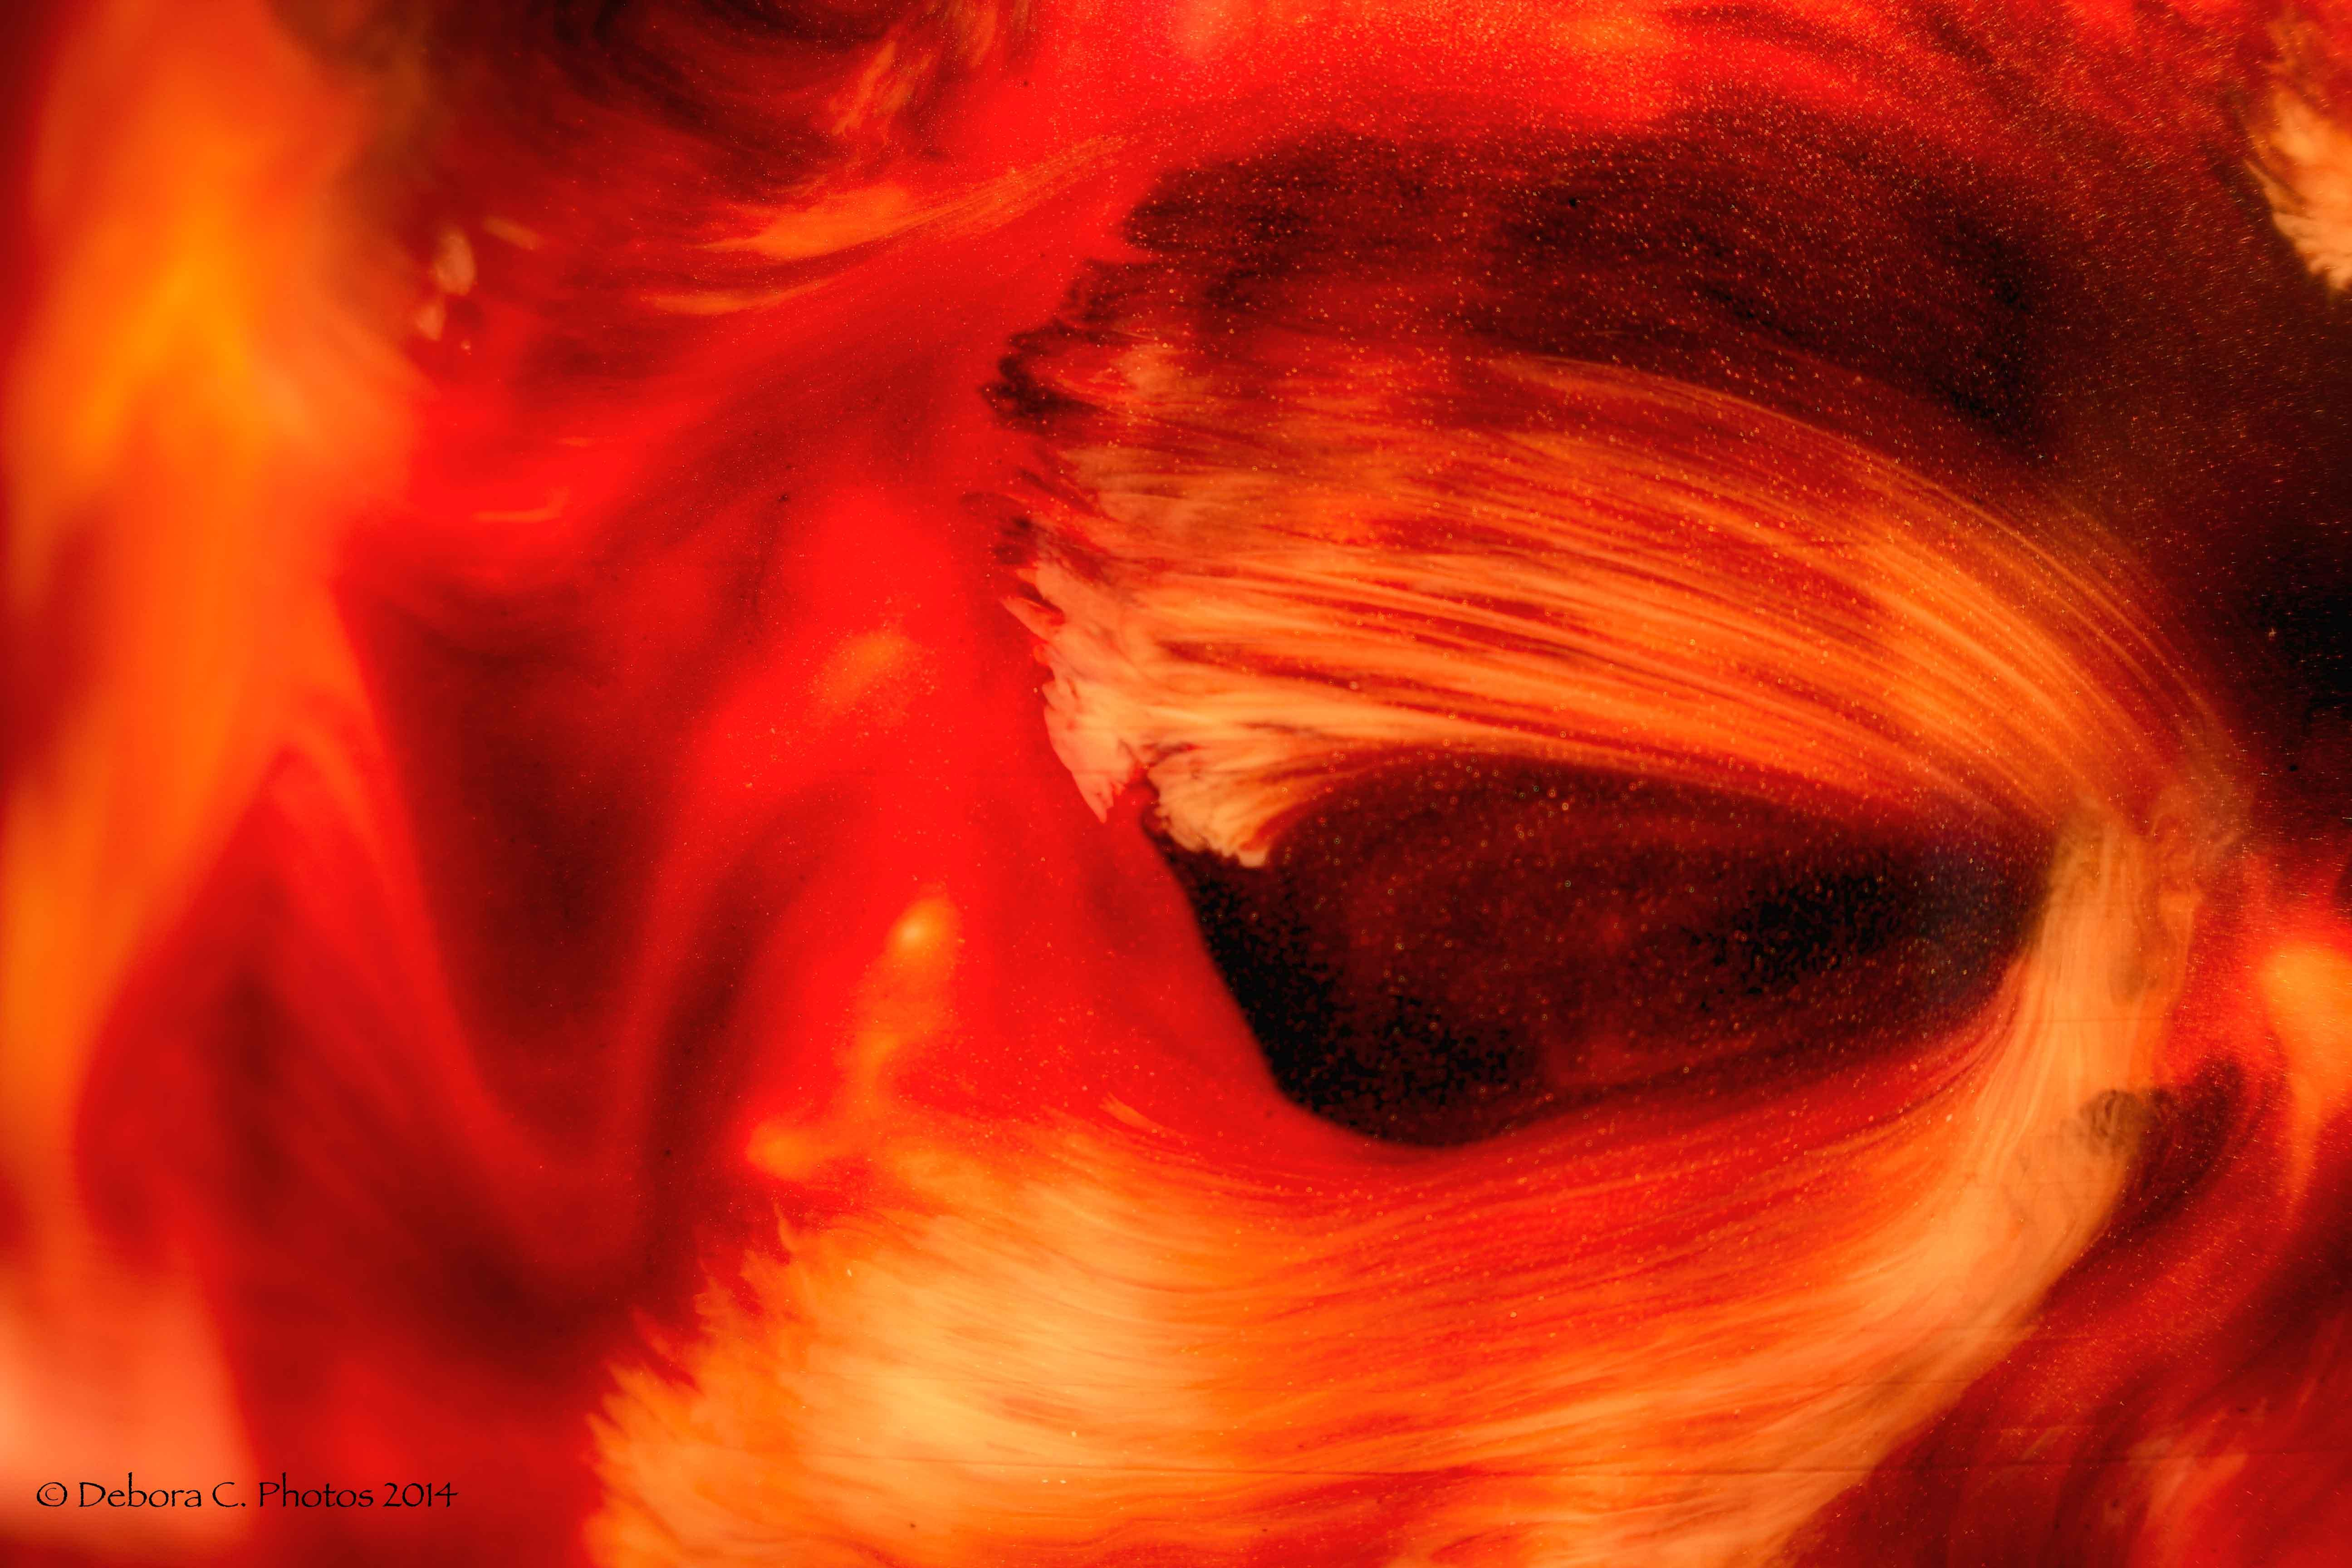 The Abstract Eye of A Scientist - image 2 - student project